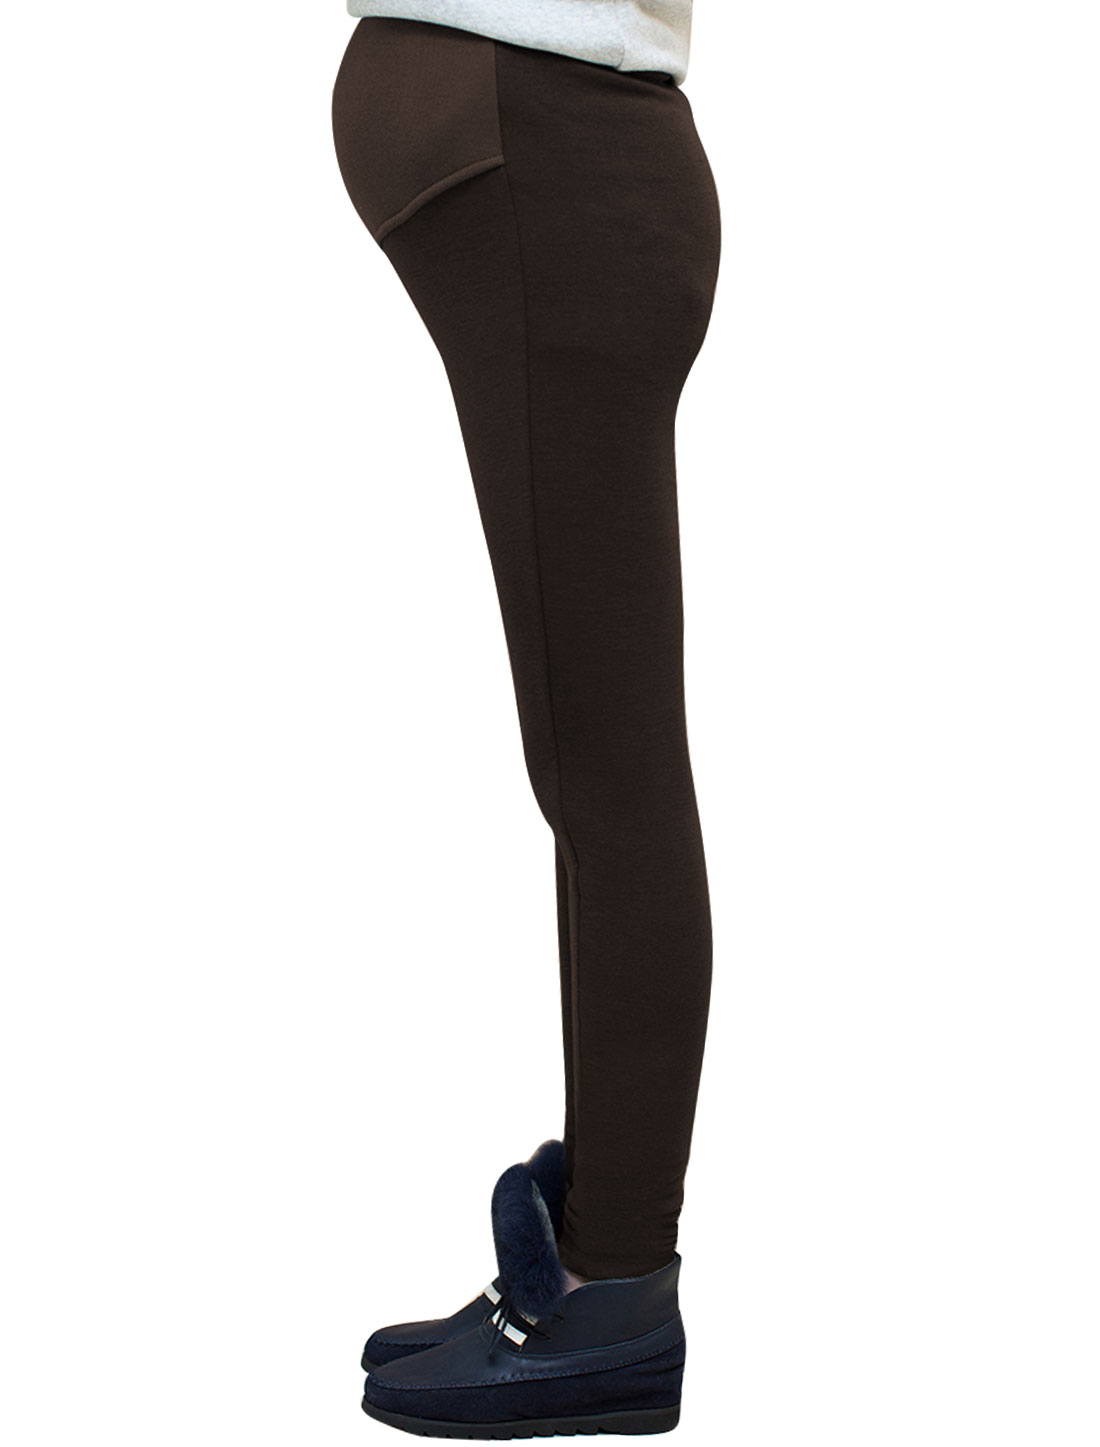 Motherhood Fleece Lined Ribbed Spliced Design Stretchy Waist Leggings Brown XS